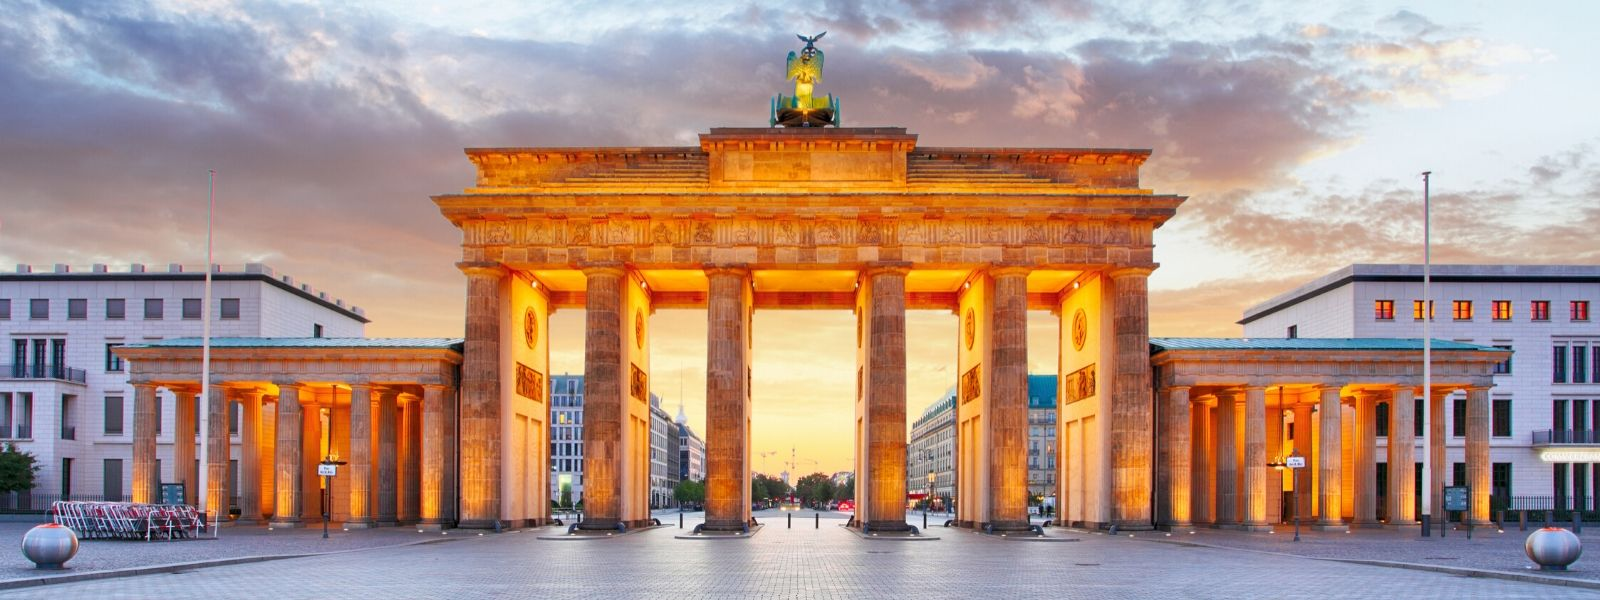 Study Abroad in Berlin